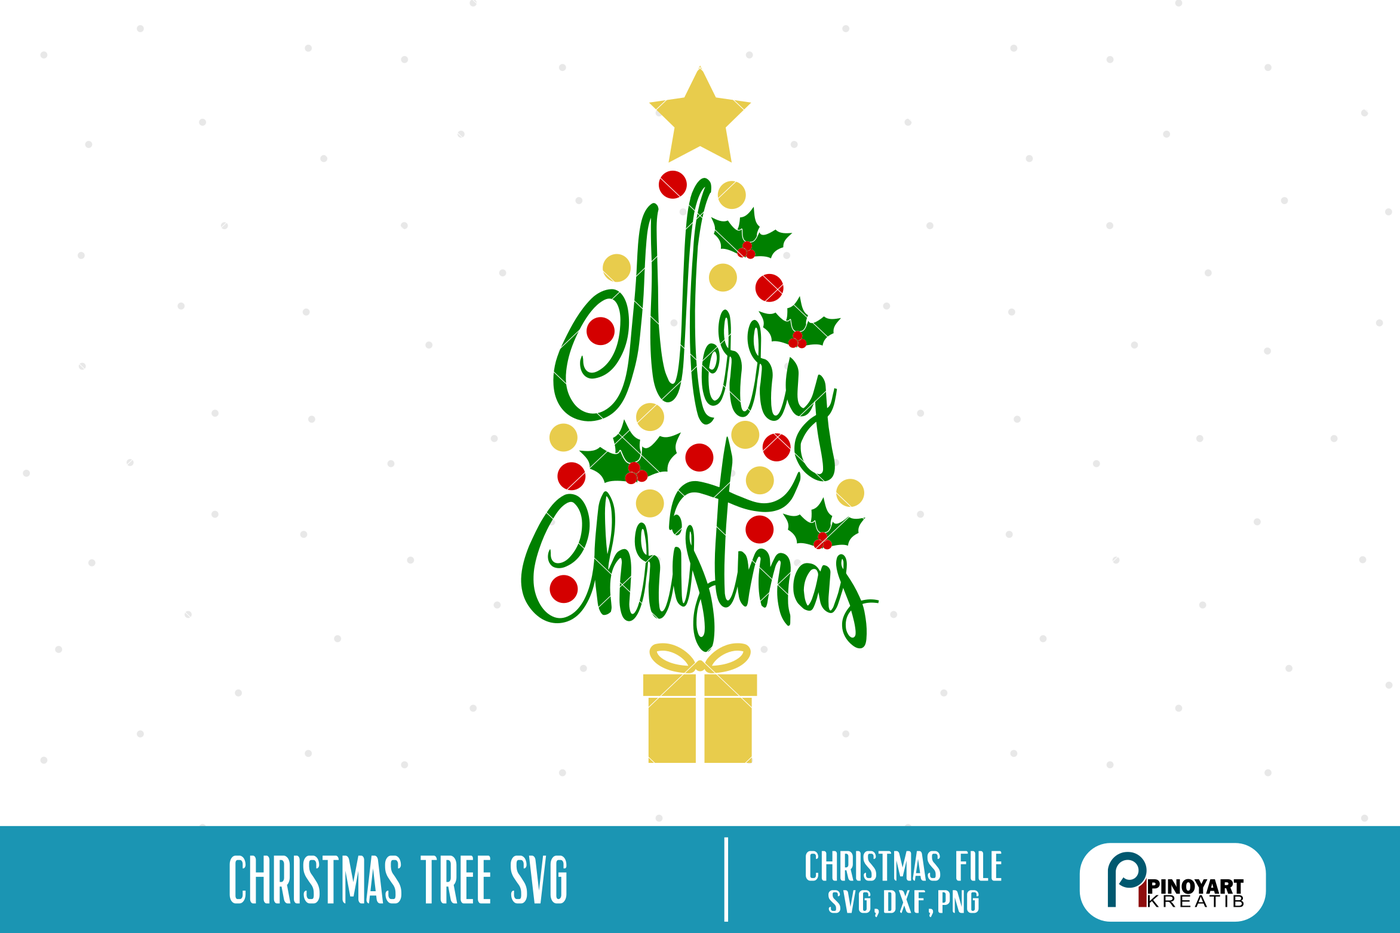 Christmas Tree Svg Christmas Svg Christmas Tree Svg Merry